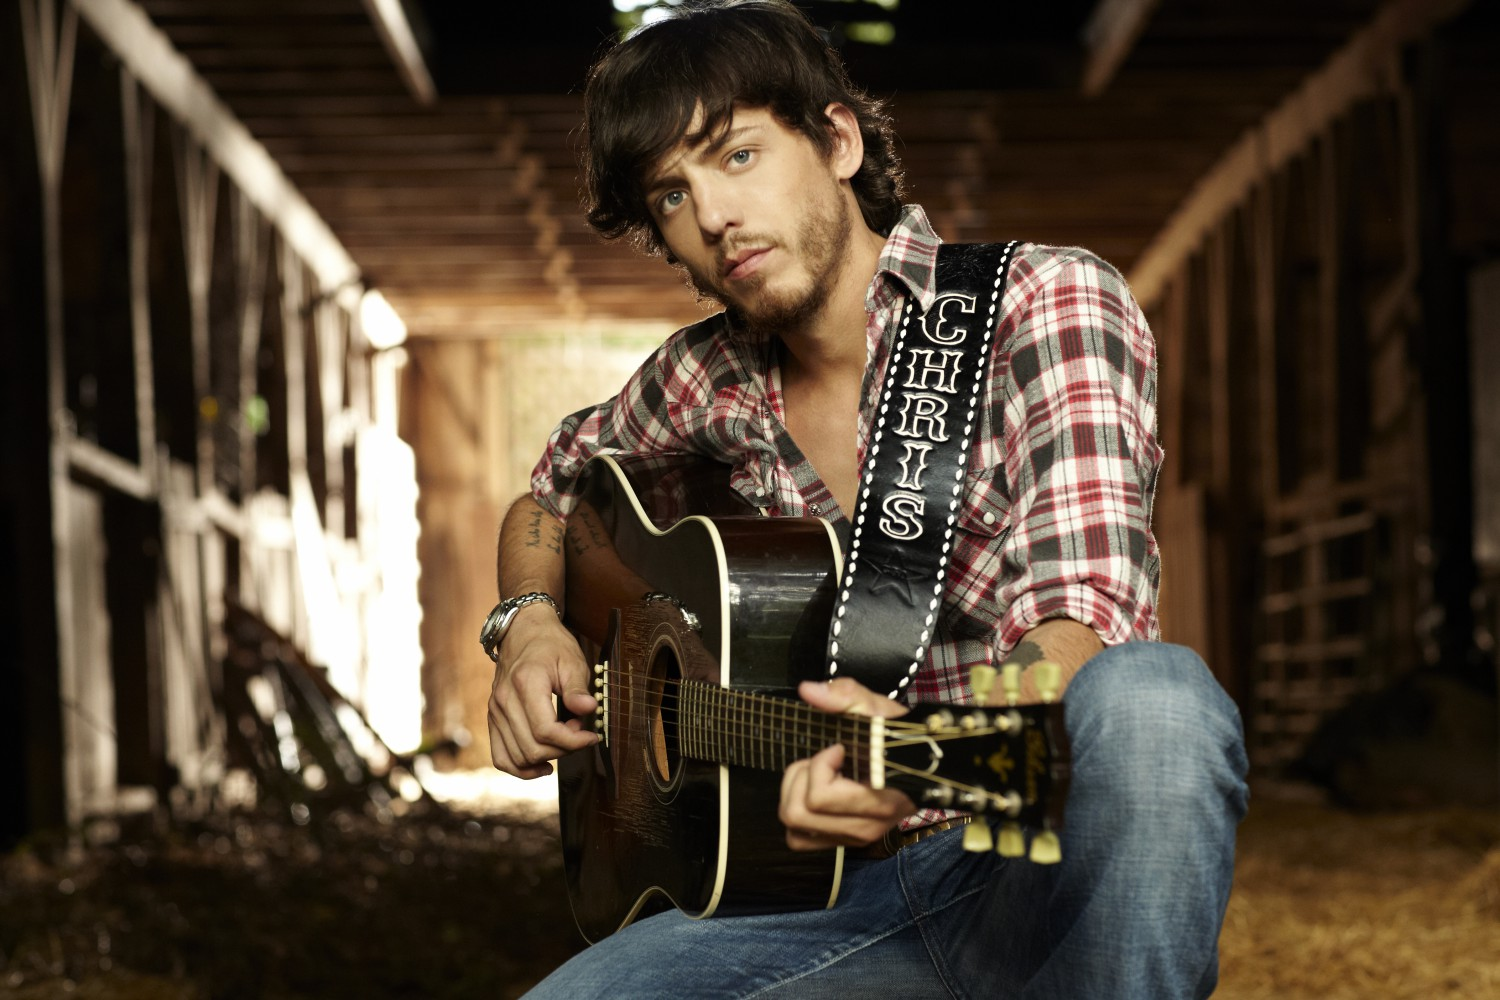 On The Verge Artist: Chris Janson